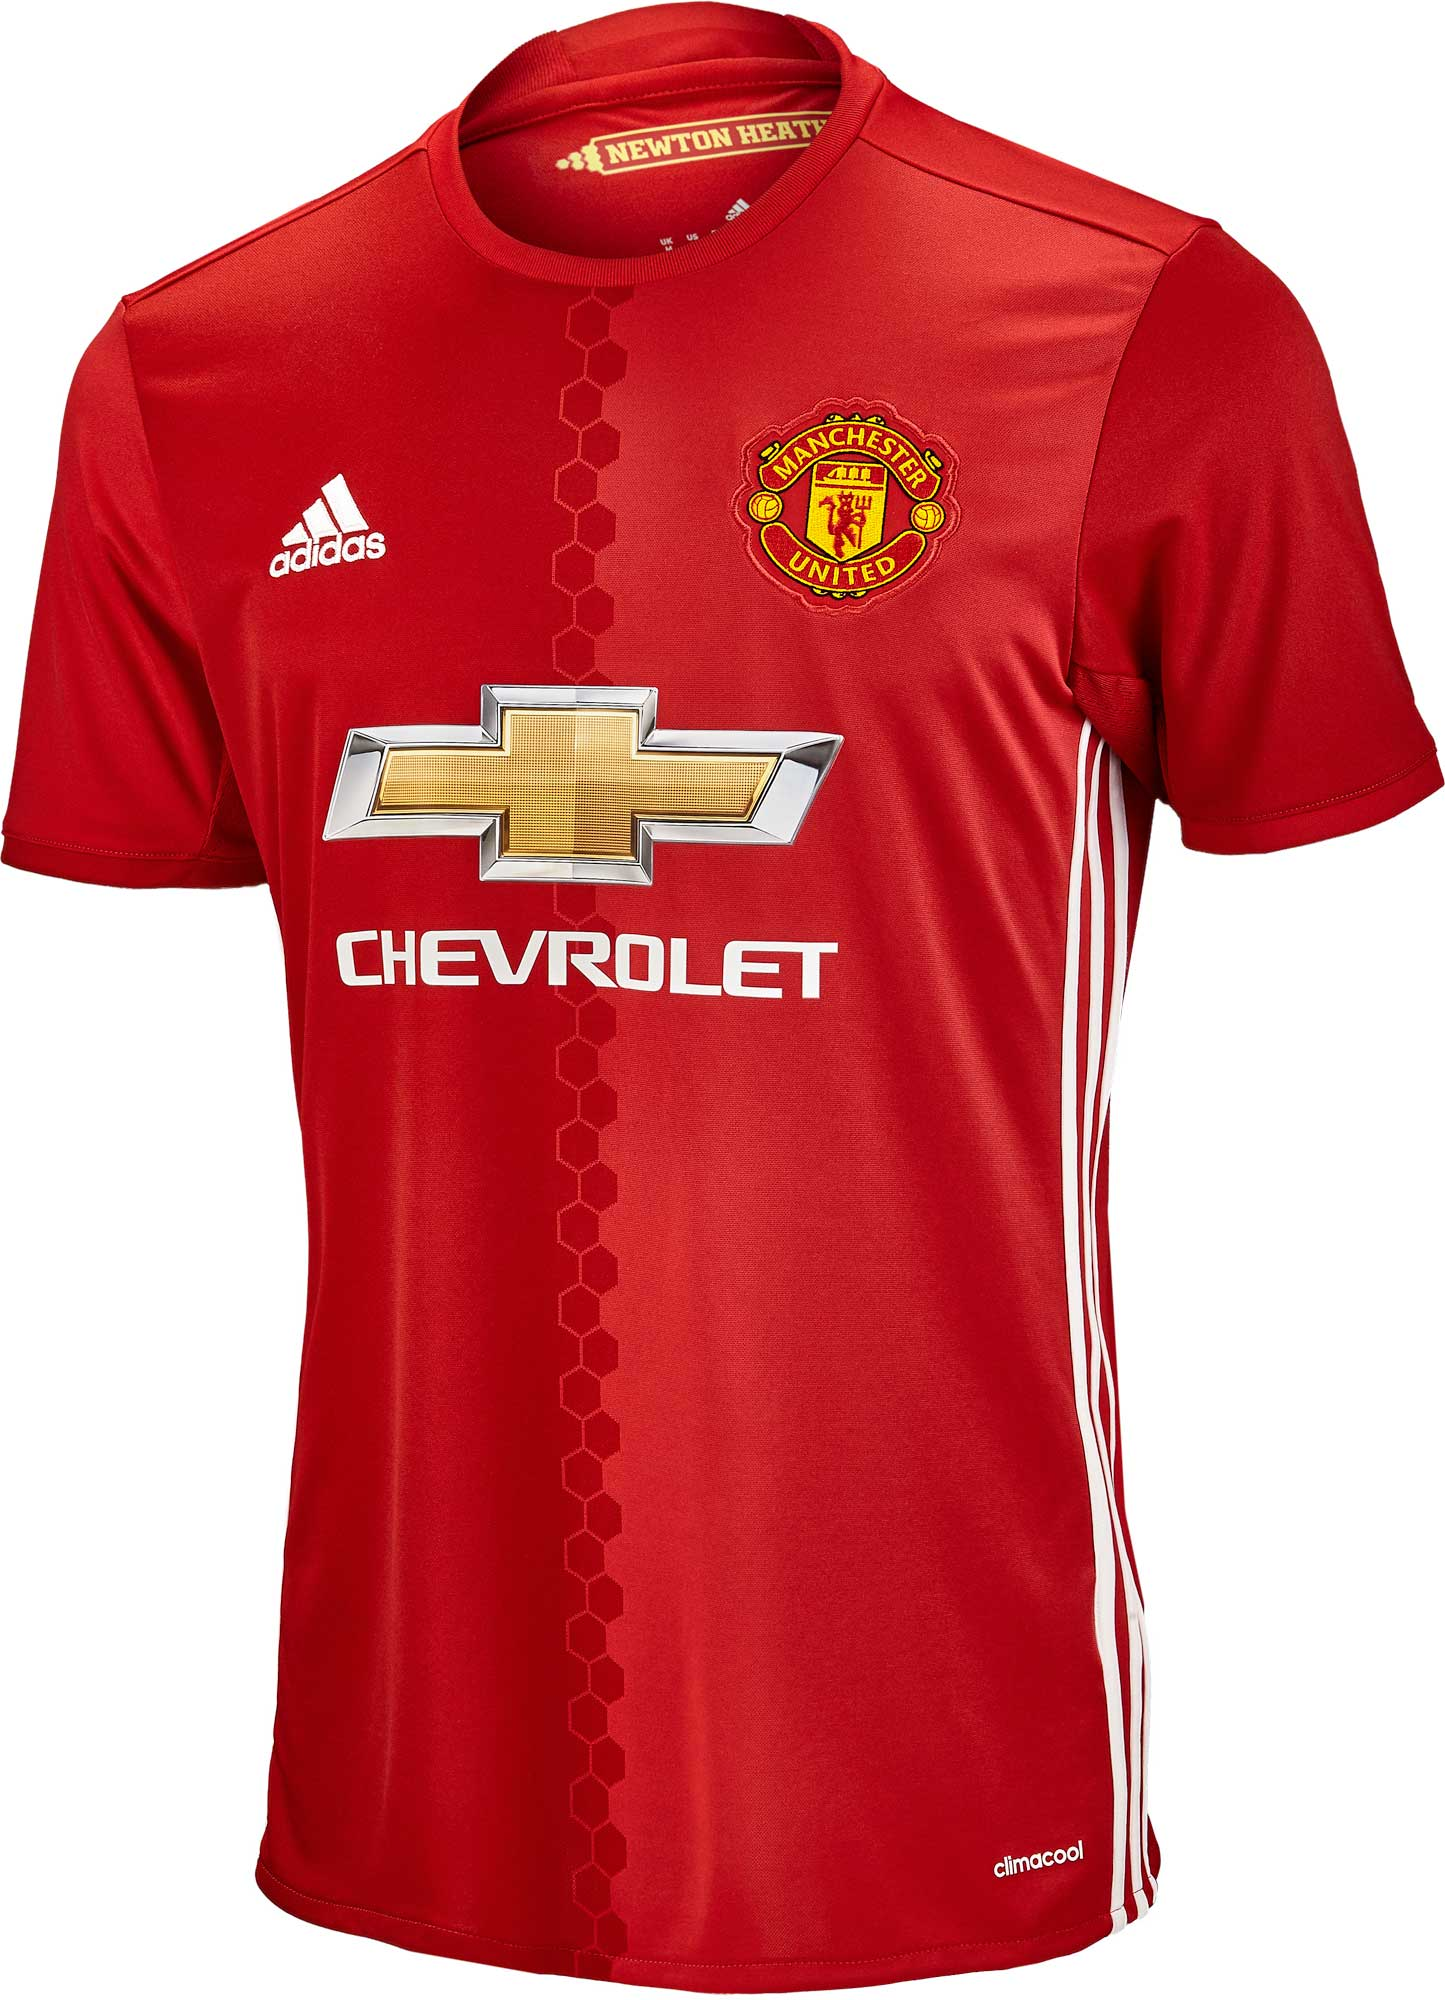 adidas Manchester United Home Jersey 2016-17 - Soccer Master